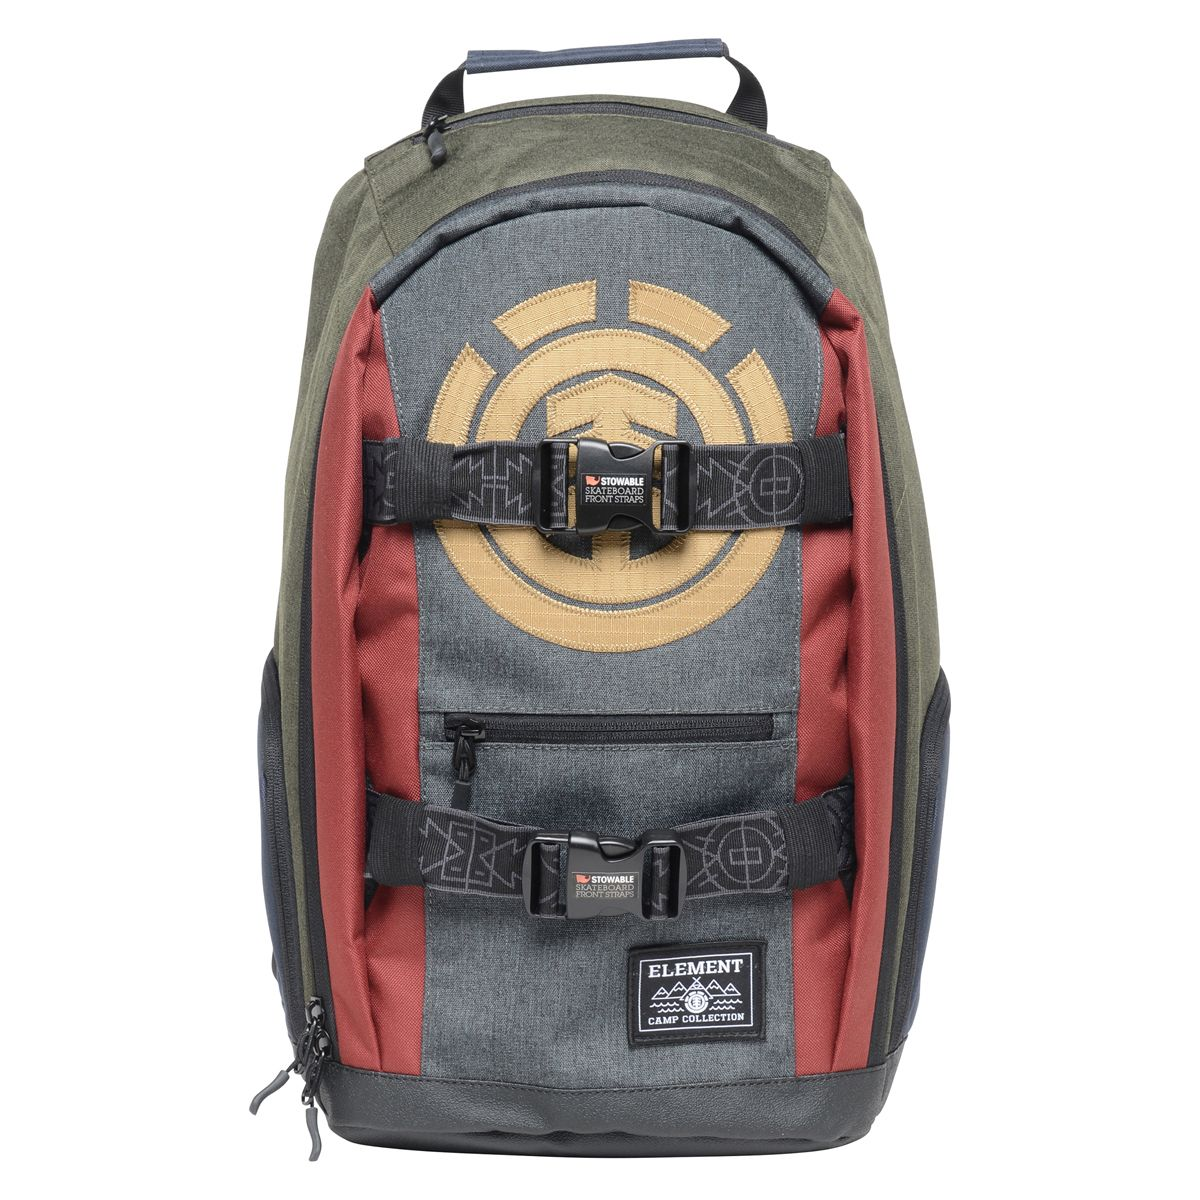 Sac 224 Dos Rentr 233 E Scolaire 2017 Skateboard Backpacks